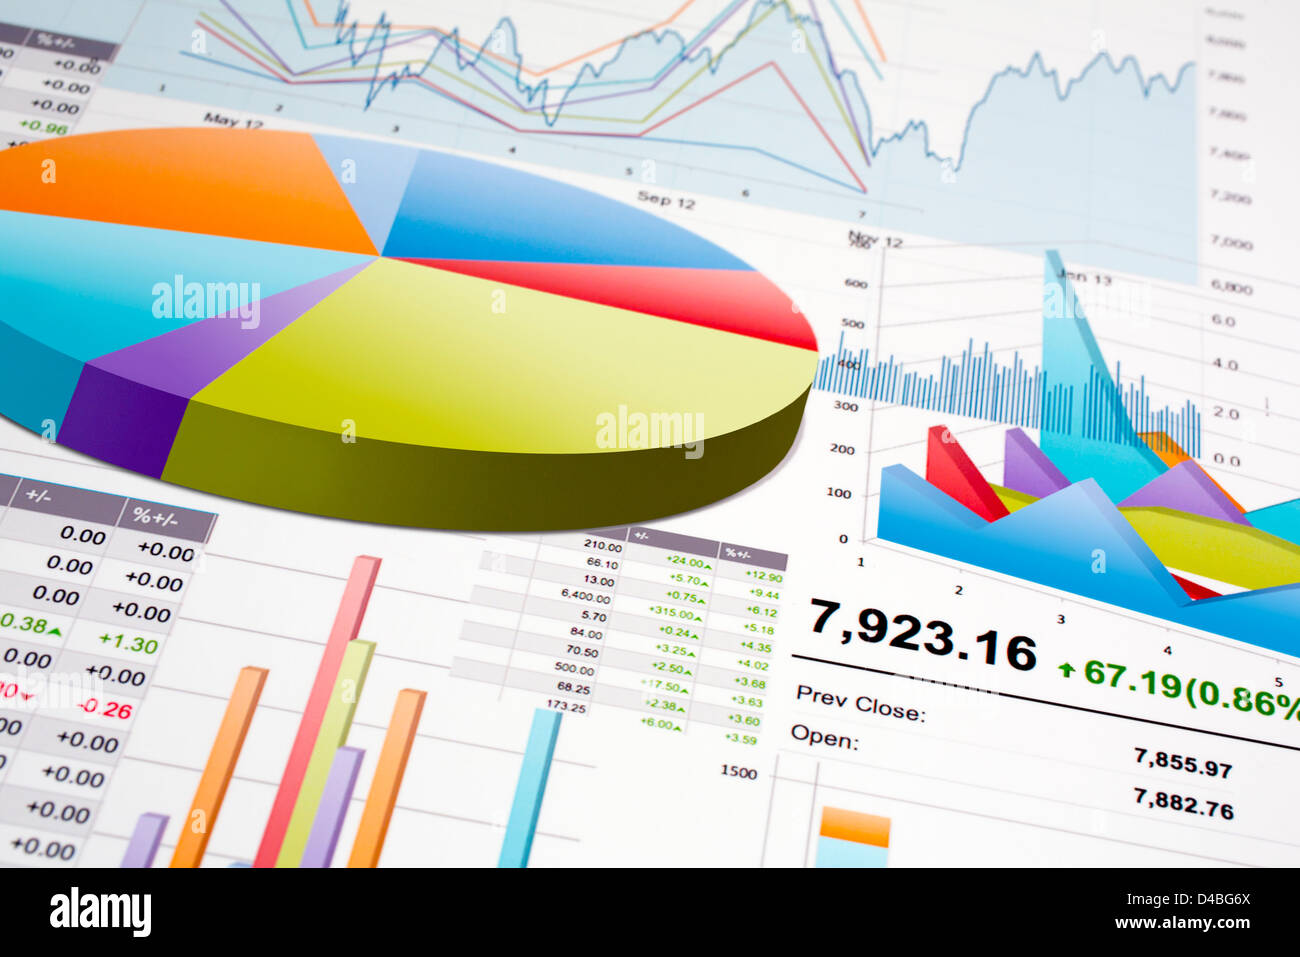 Graphs and Charts - Stock Image